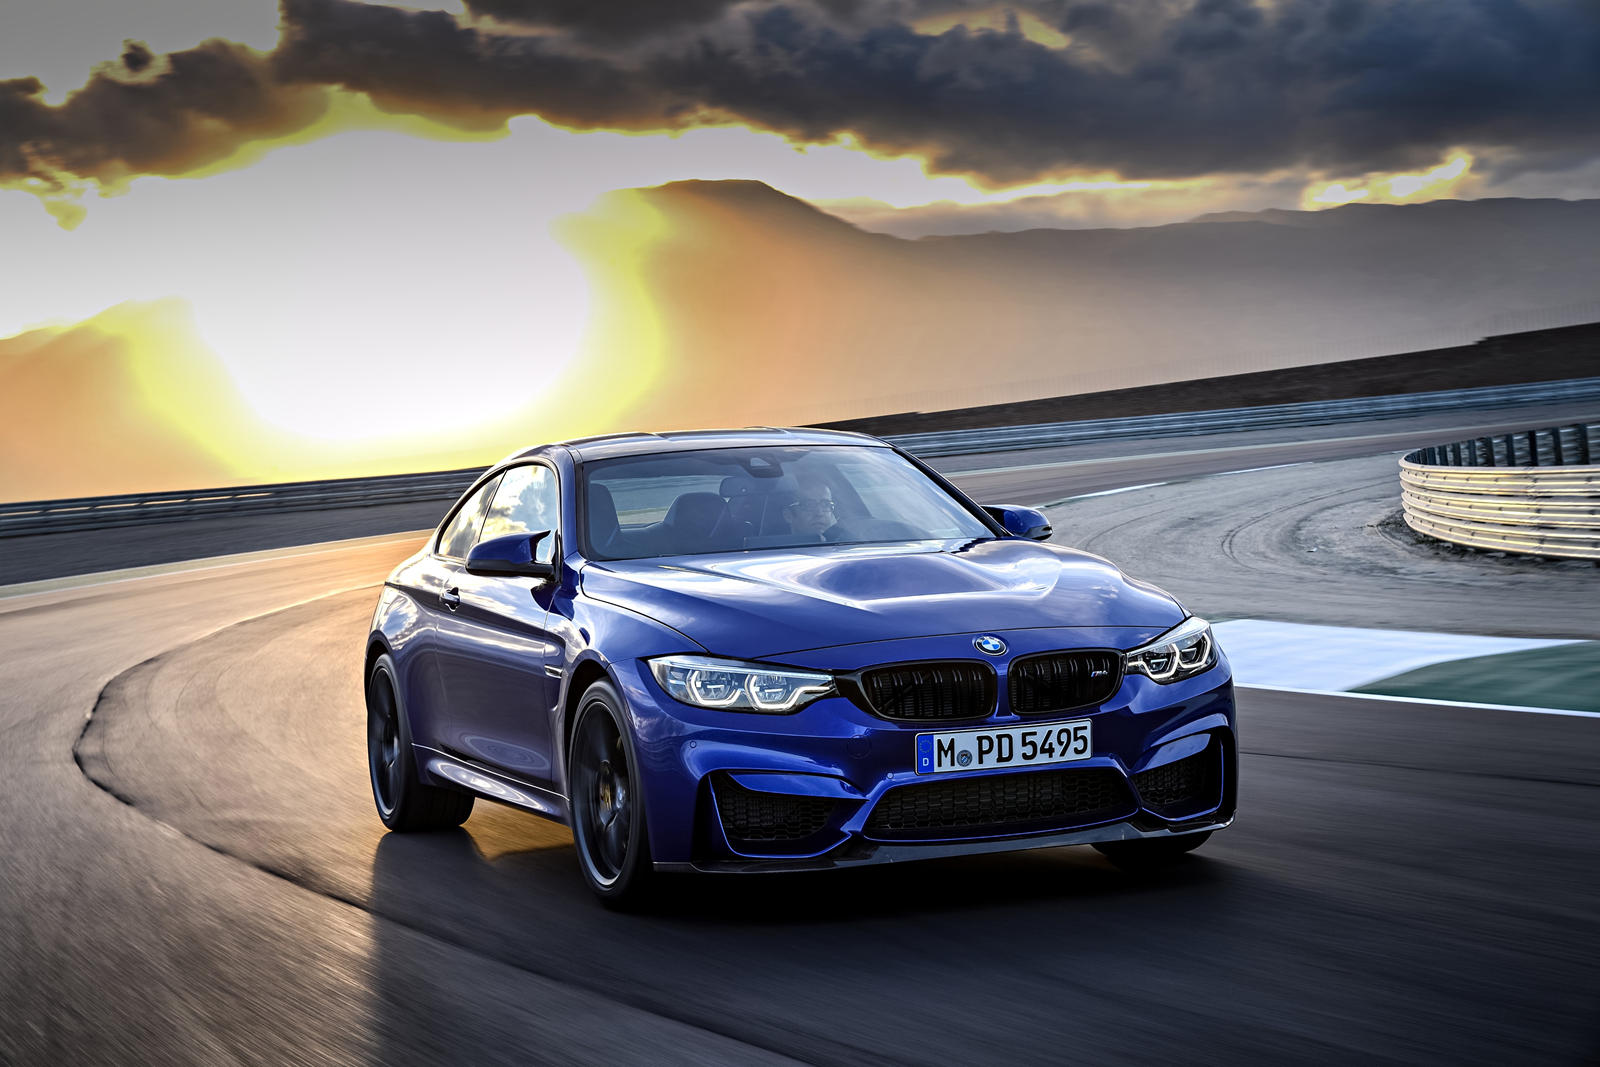 2021 Bmw M4 Coupe Review Price Trims Specs Photos Ratings In Usa Carbuzz